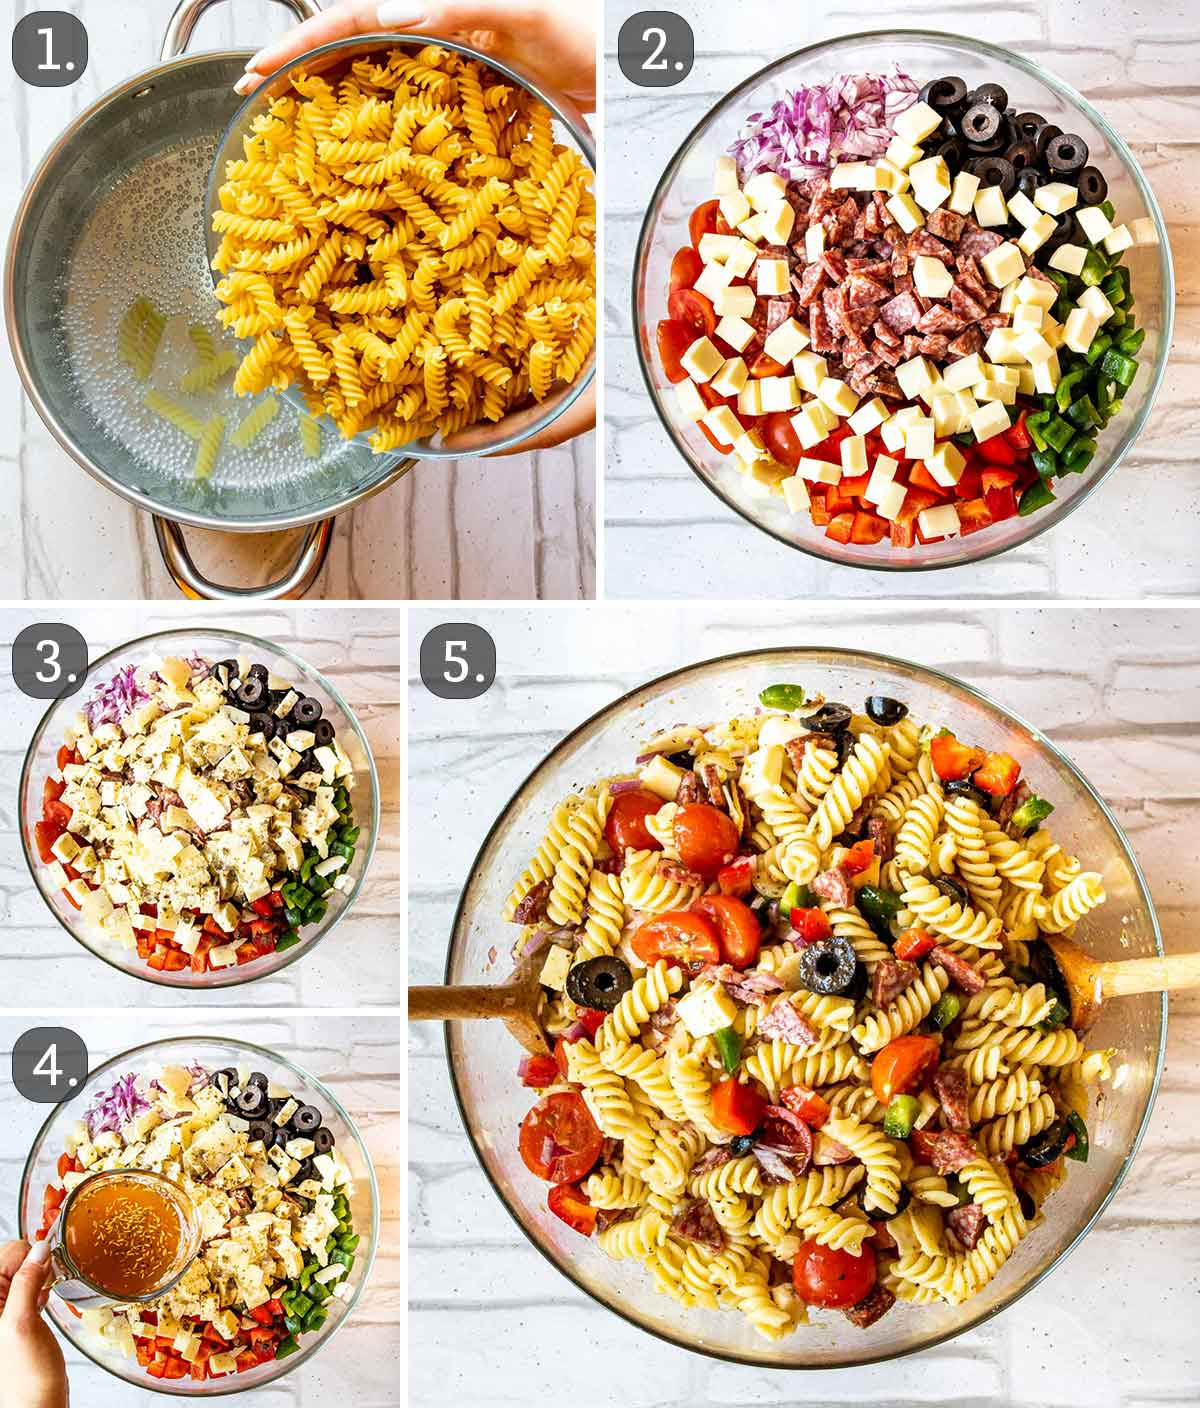 detailed process shots showing how to make italian pasta salad.